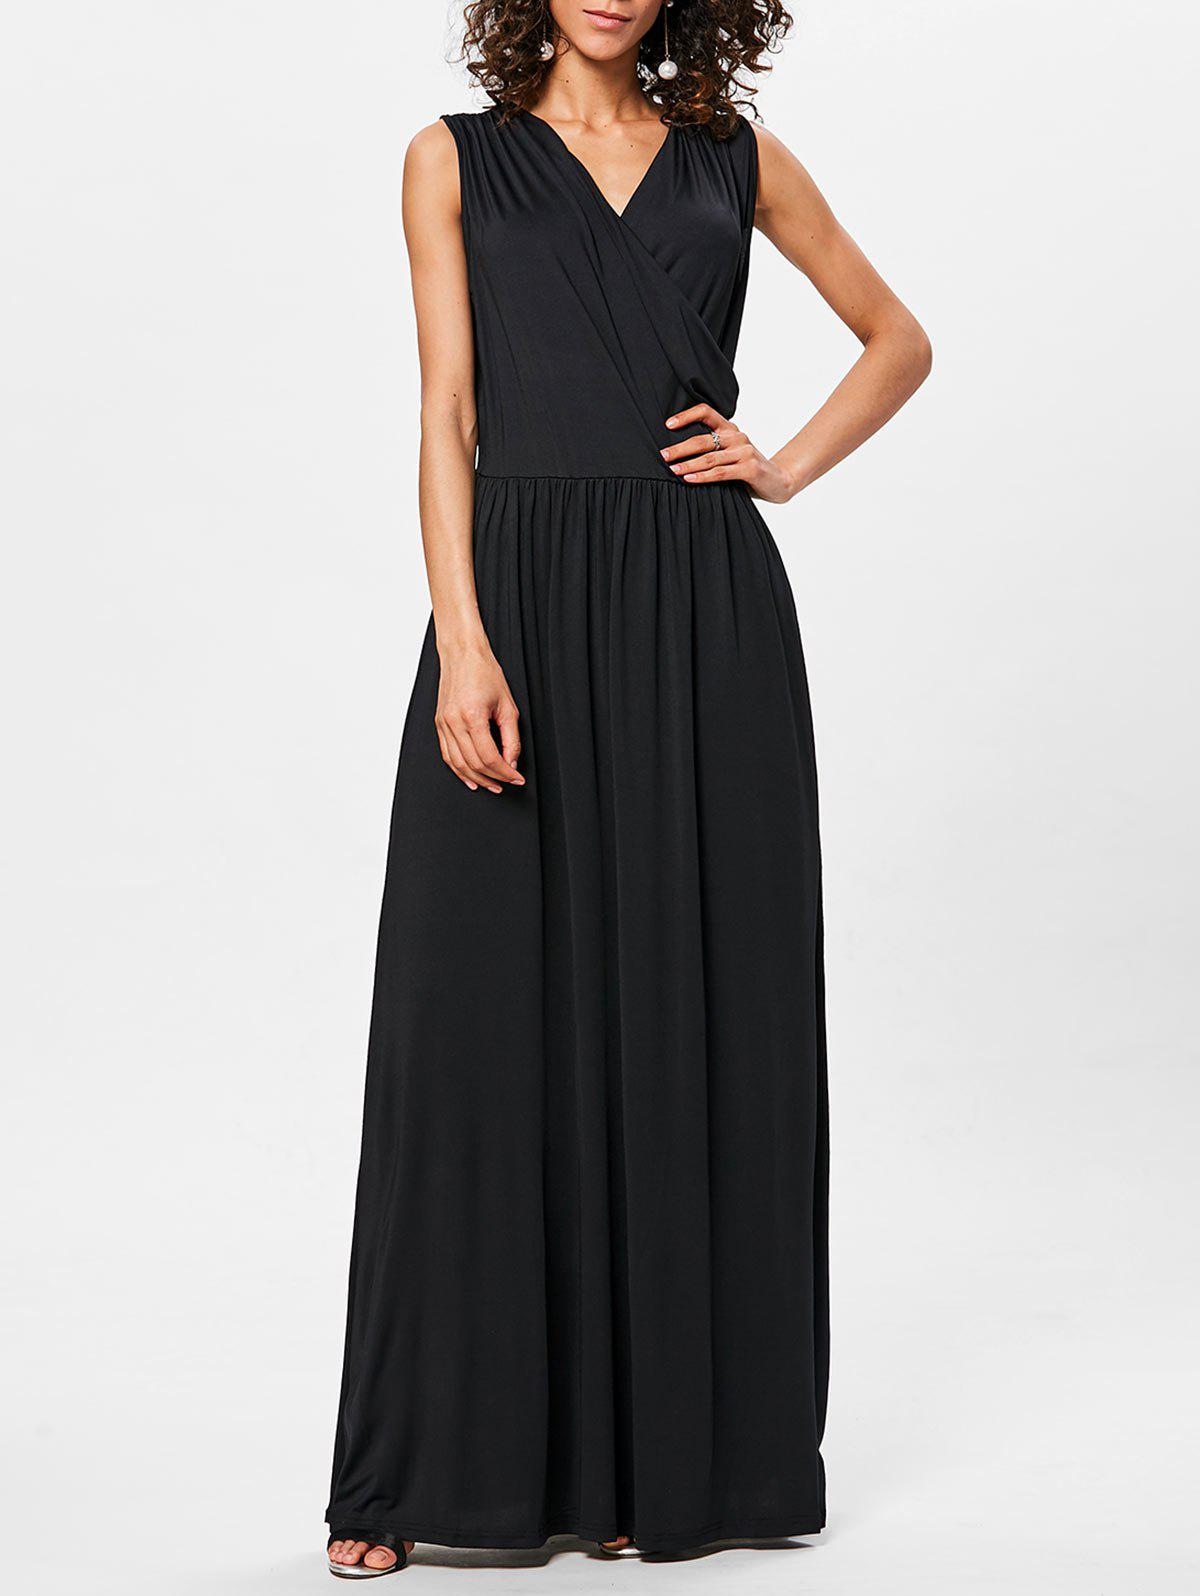 Floor Length V Neck Sleeveless Dress - BLACK 2XL